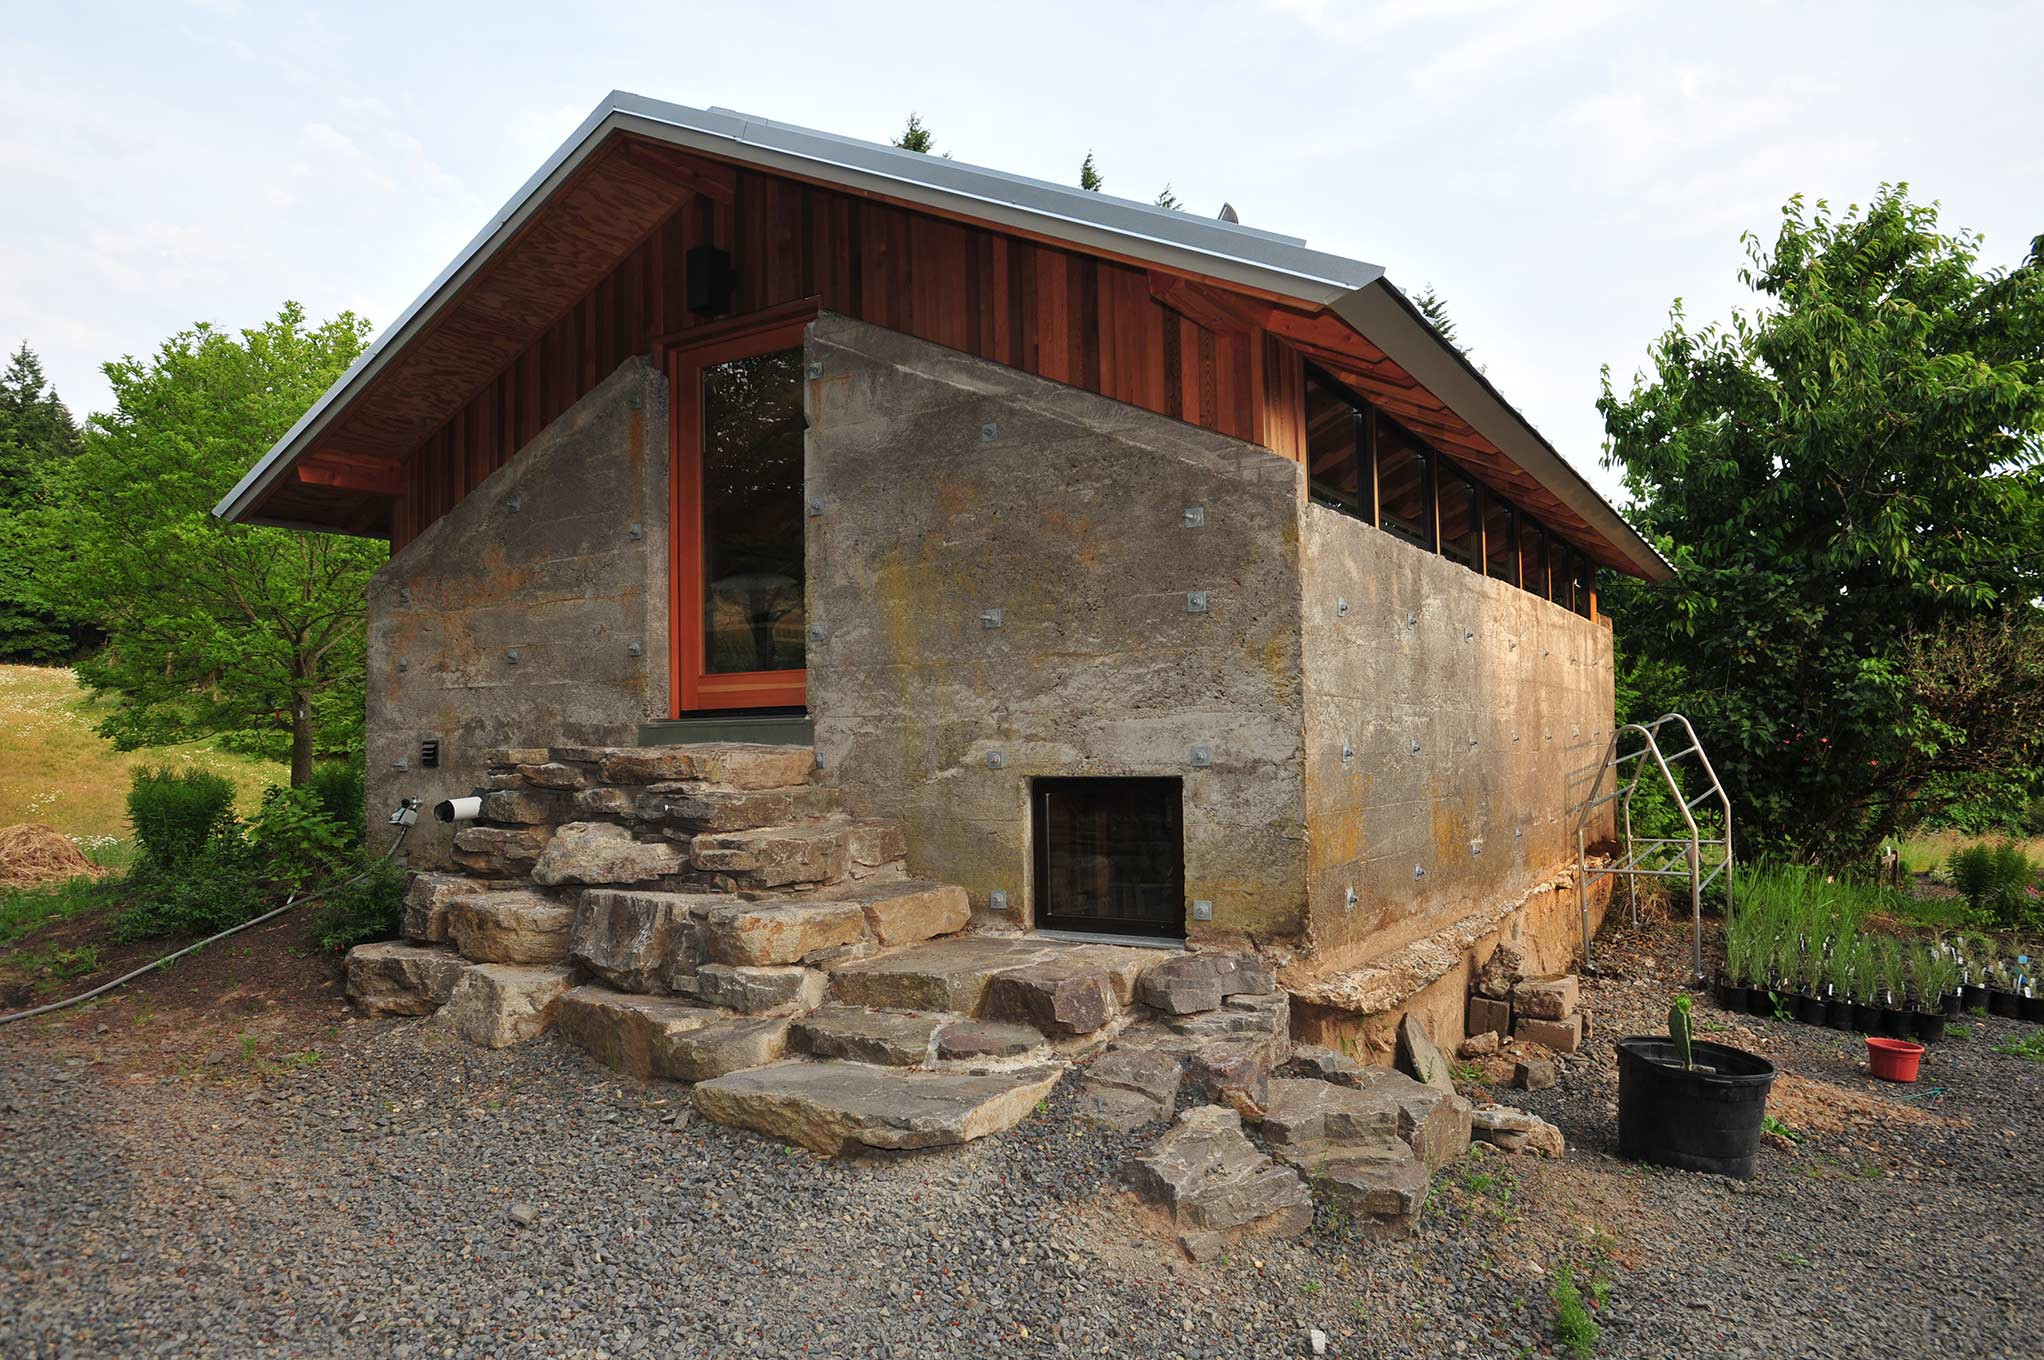 West Wind Tractor House exterior